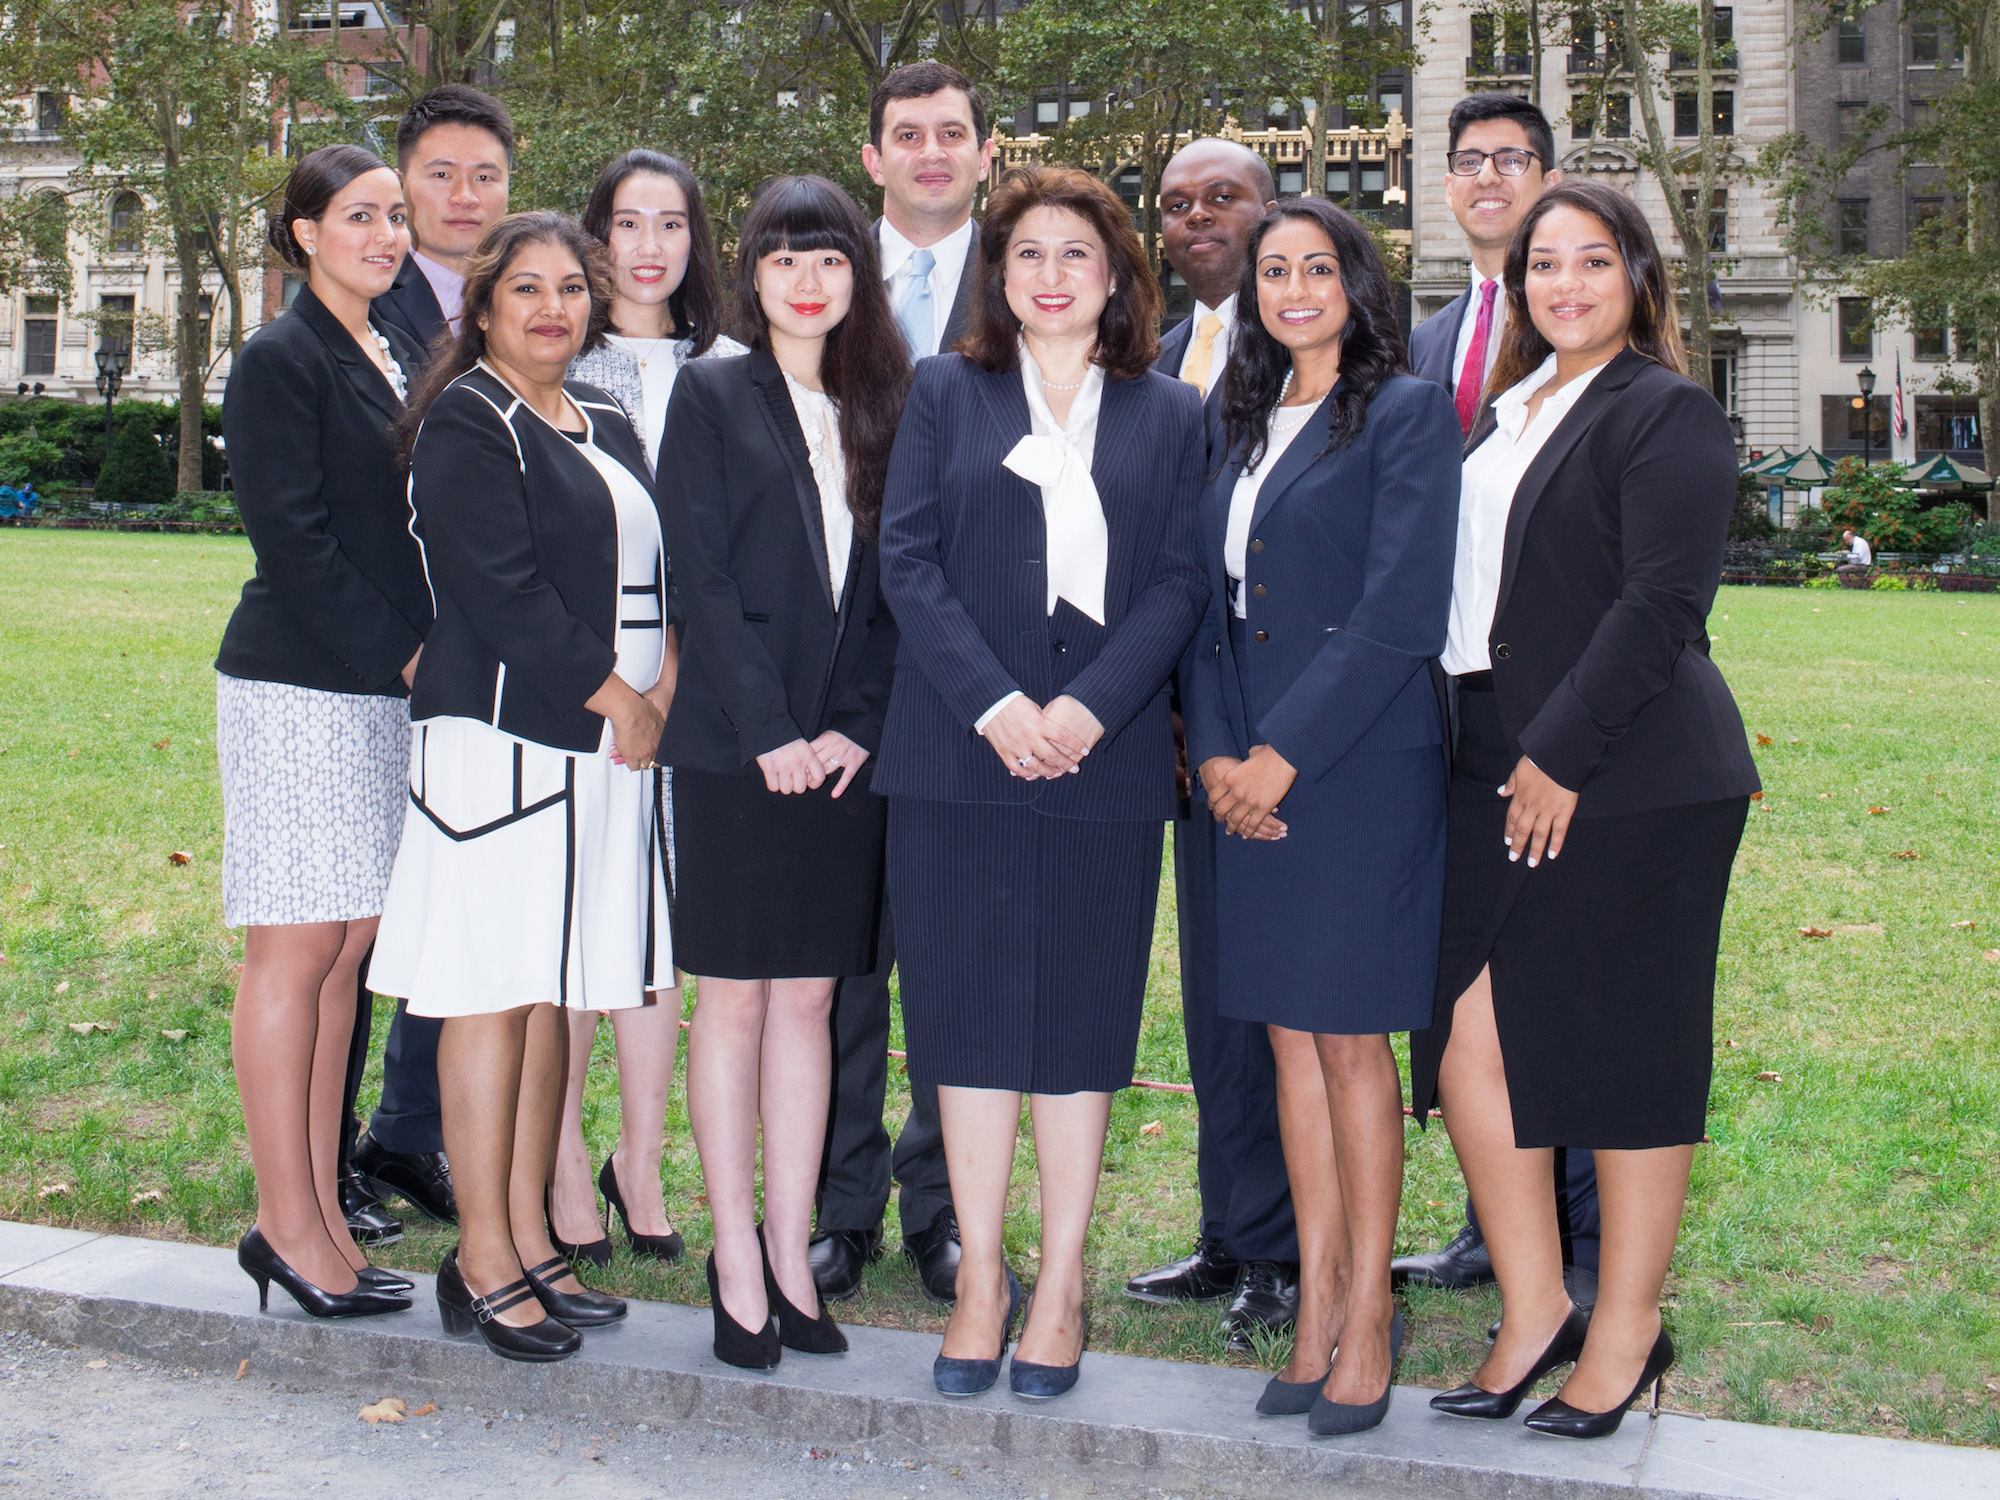 The team at Mona Shaw & Associates Global